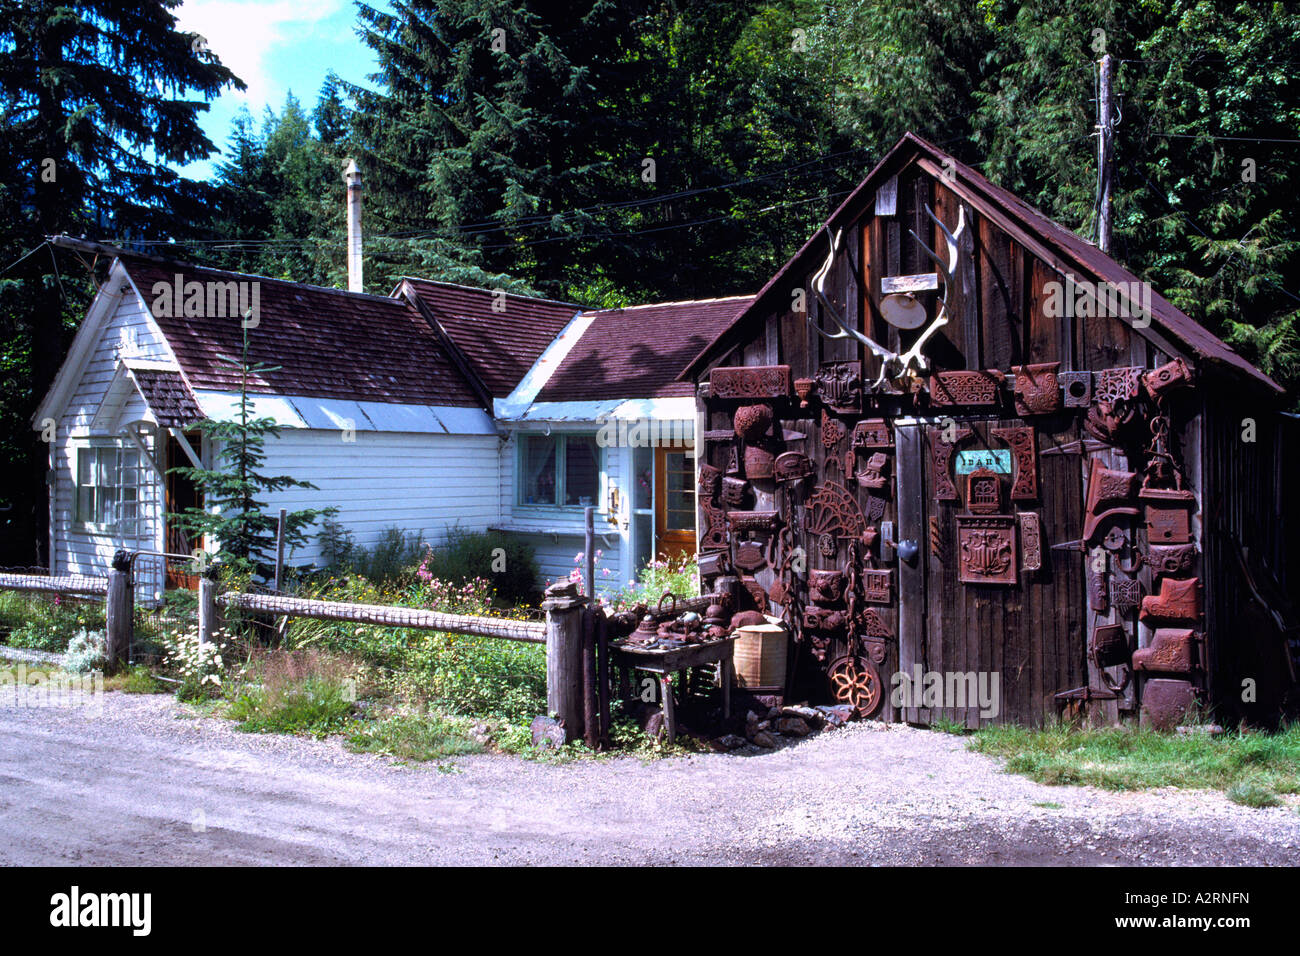 Sandon, BC, British Columbia, Canada   Old House And Storage Shed In  Historic U0027Silver Rushu0027 Mining Ghost Town, Kootenay Region